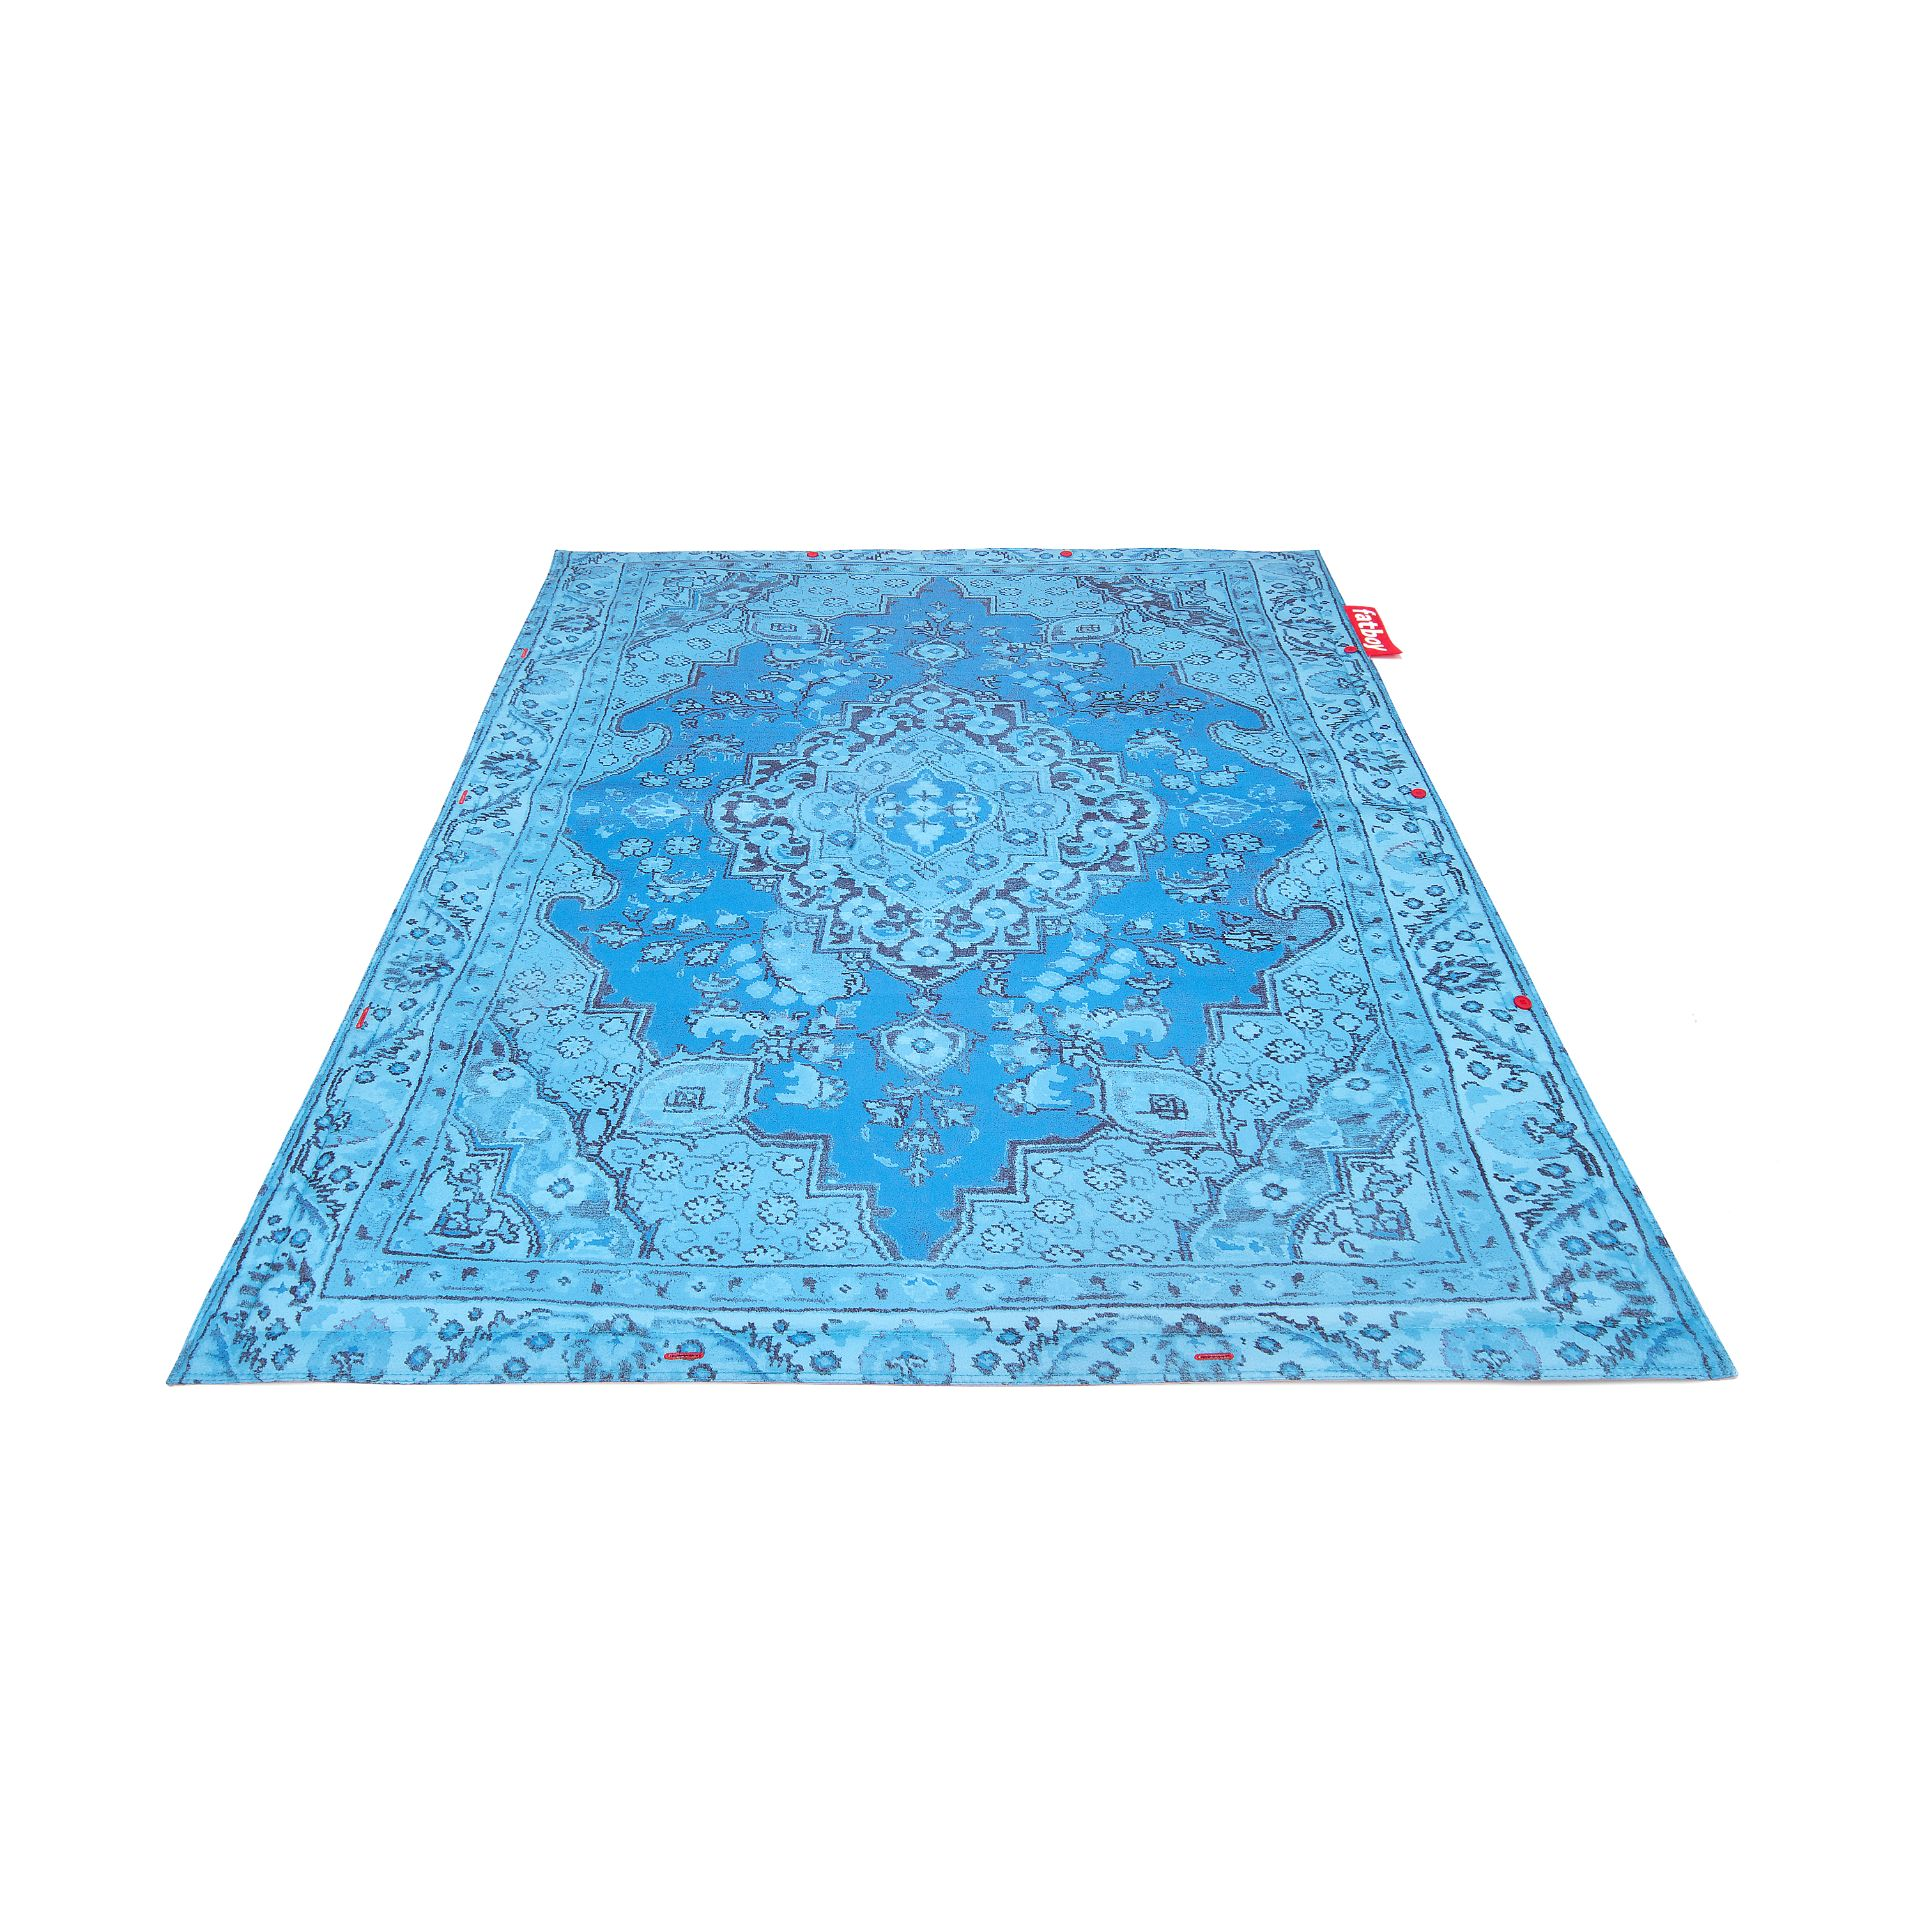 Non-flying carpet